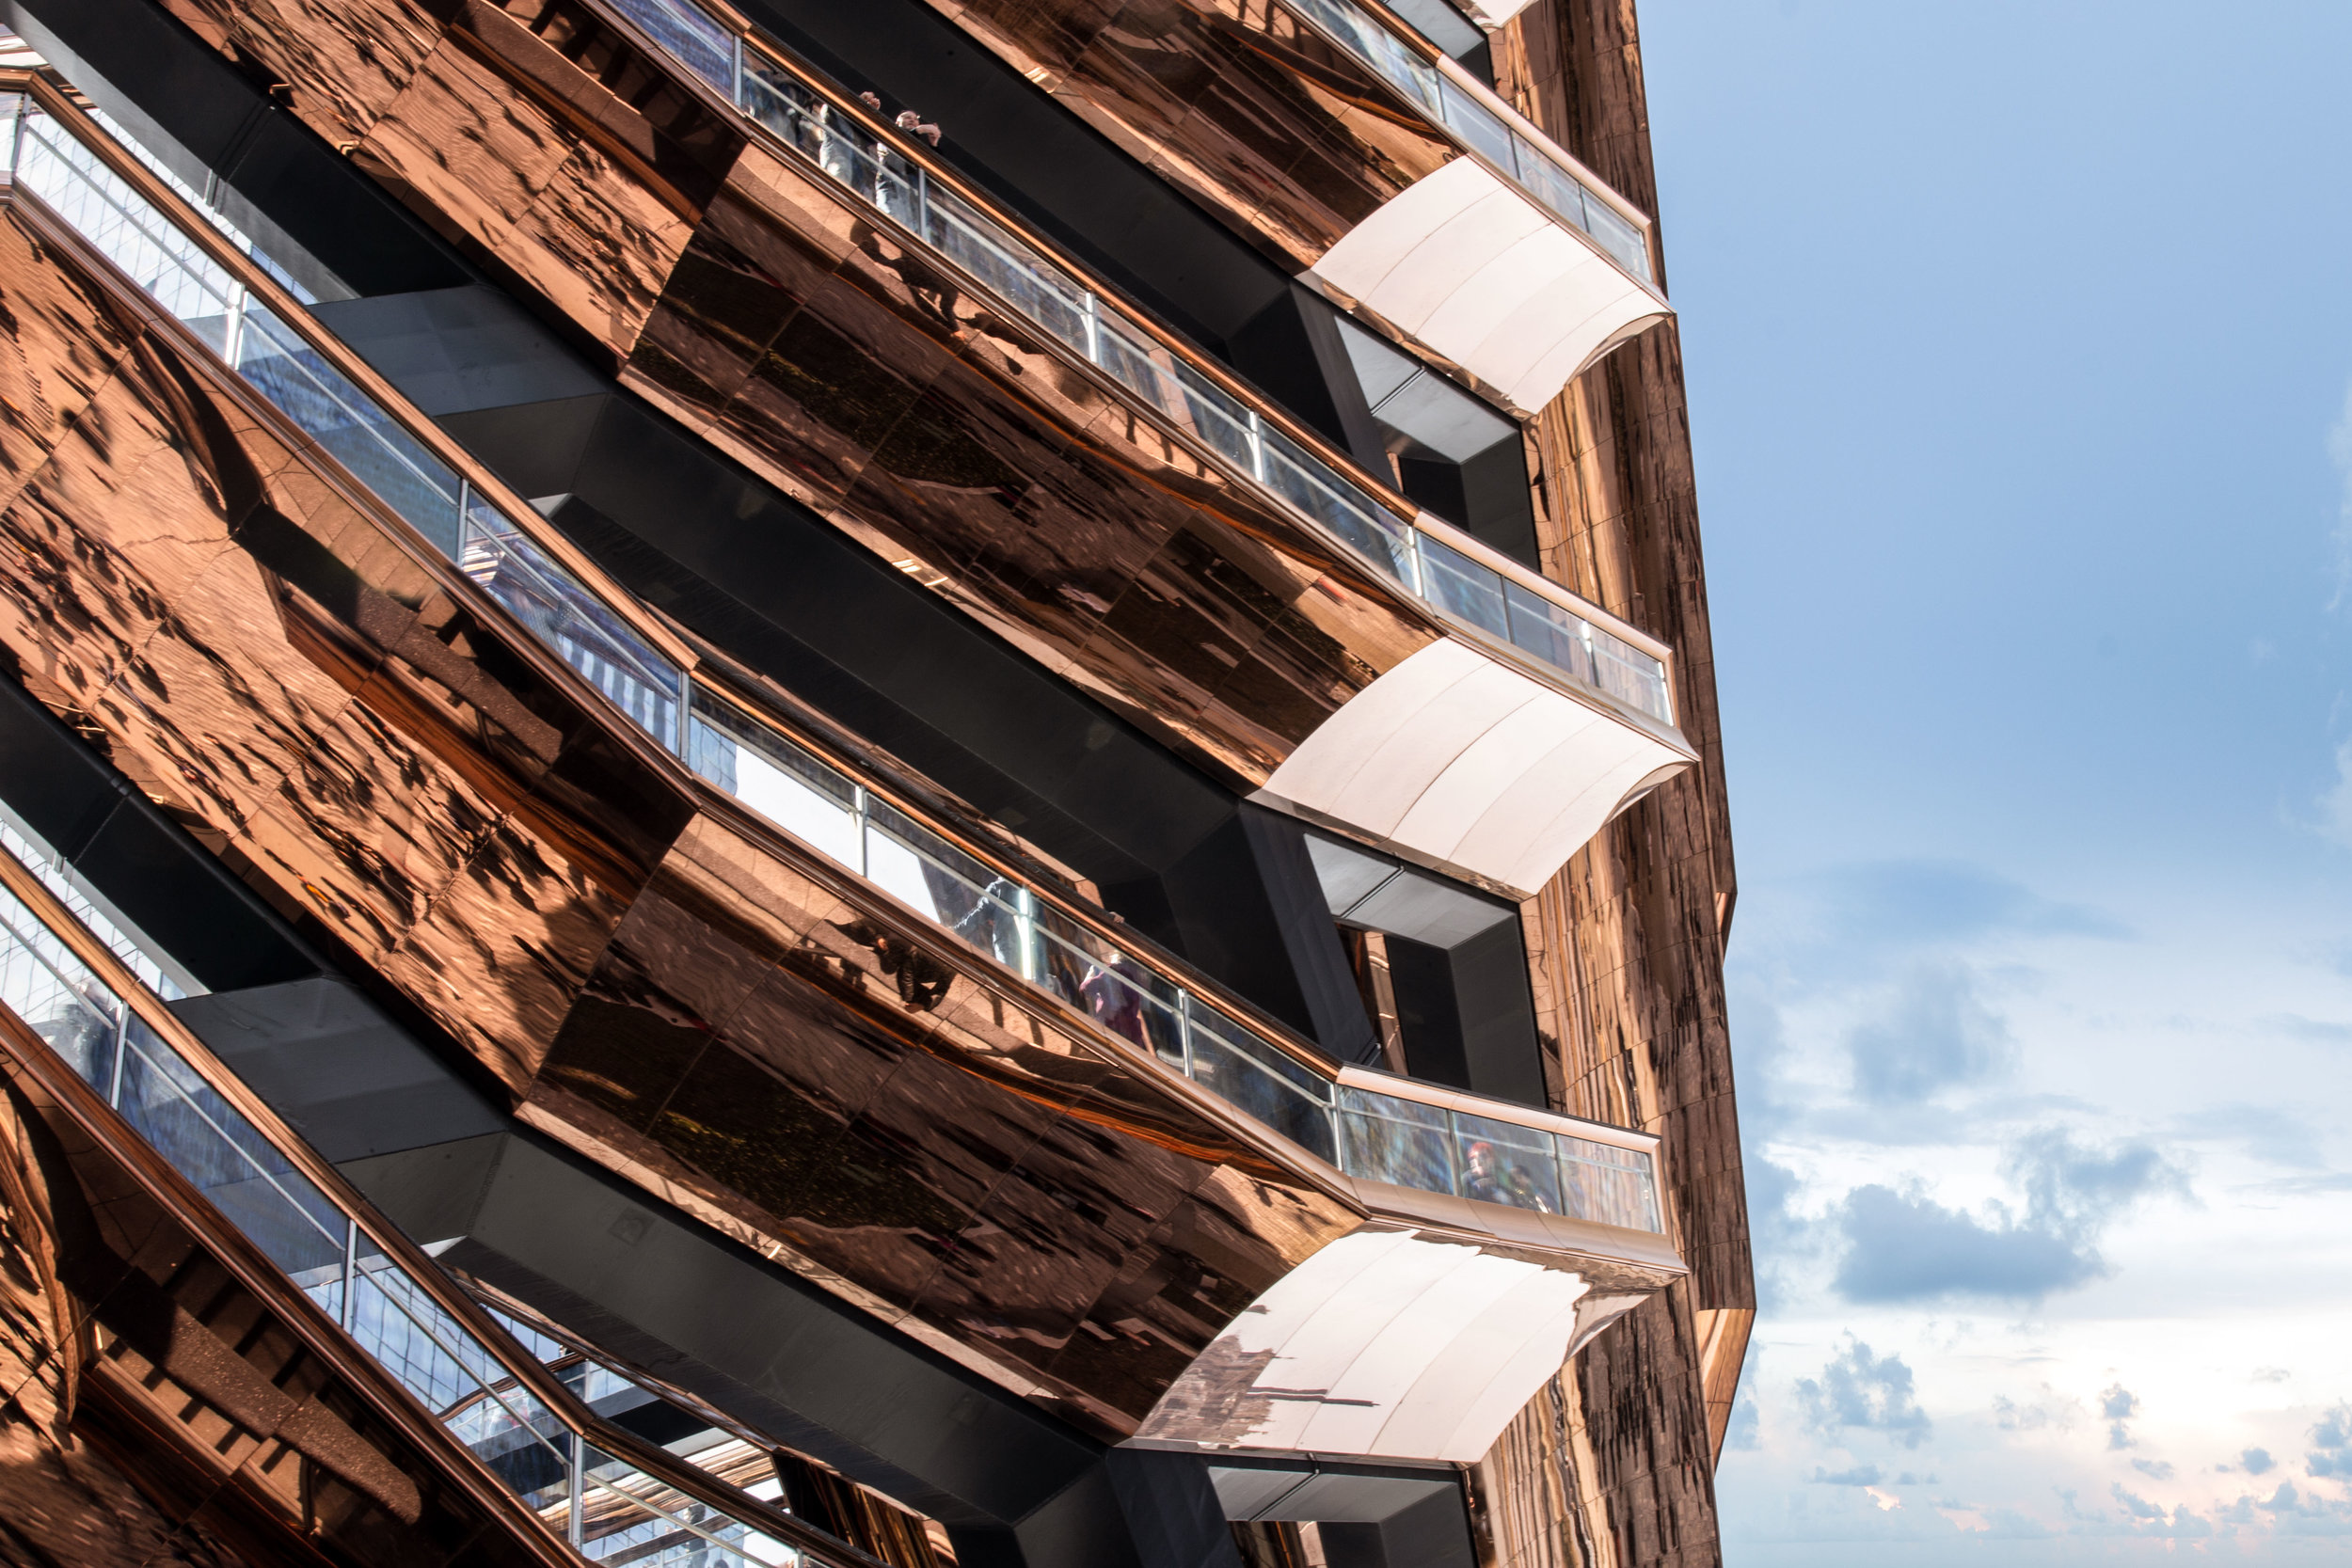 Architectural Photography - Hudson Yards, The Vessel